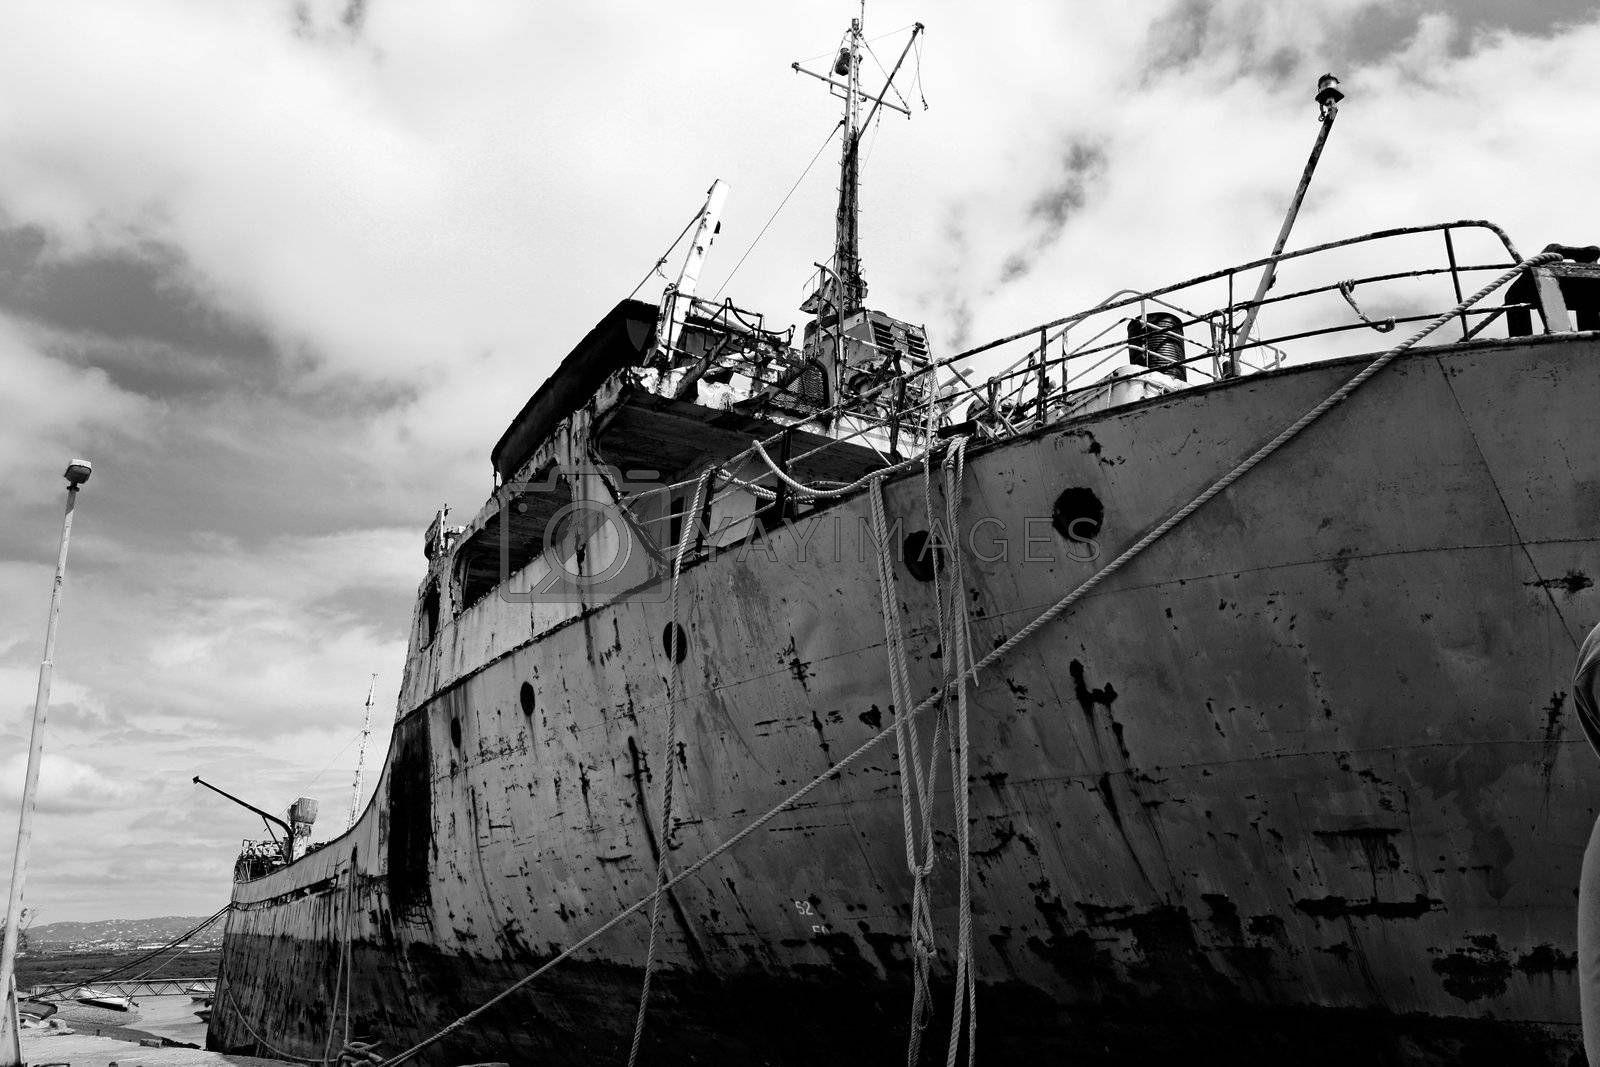 View of an abandoned ship on the docks.